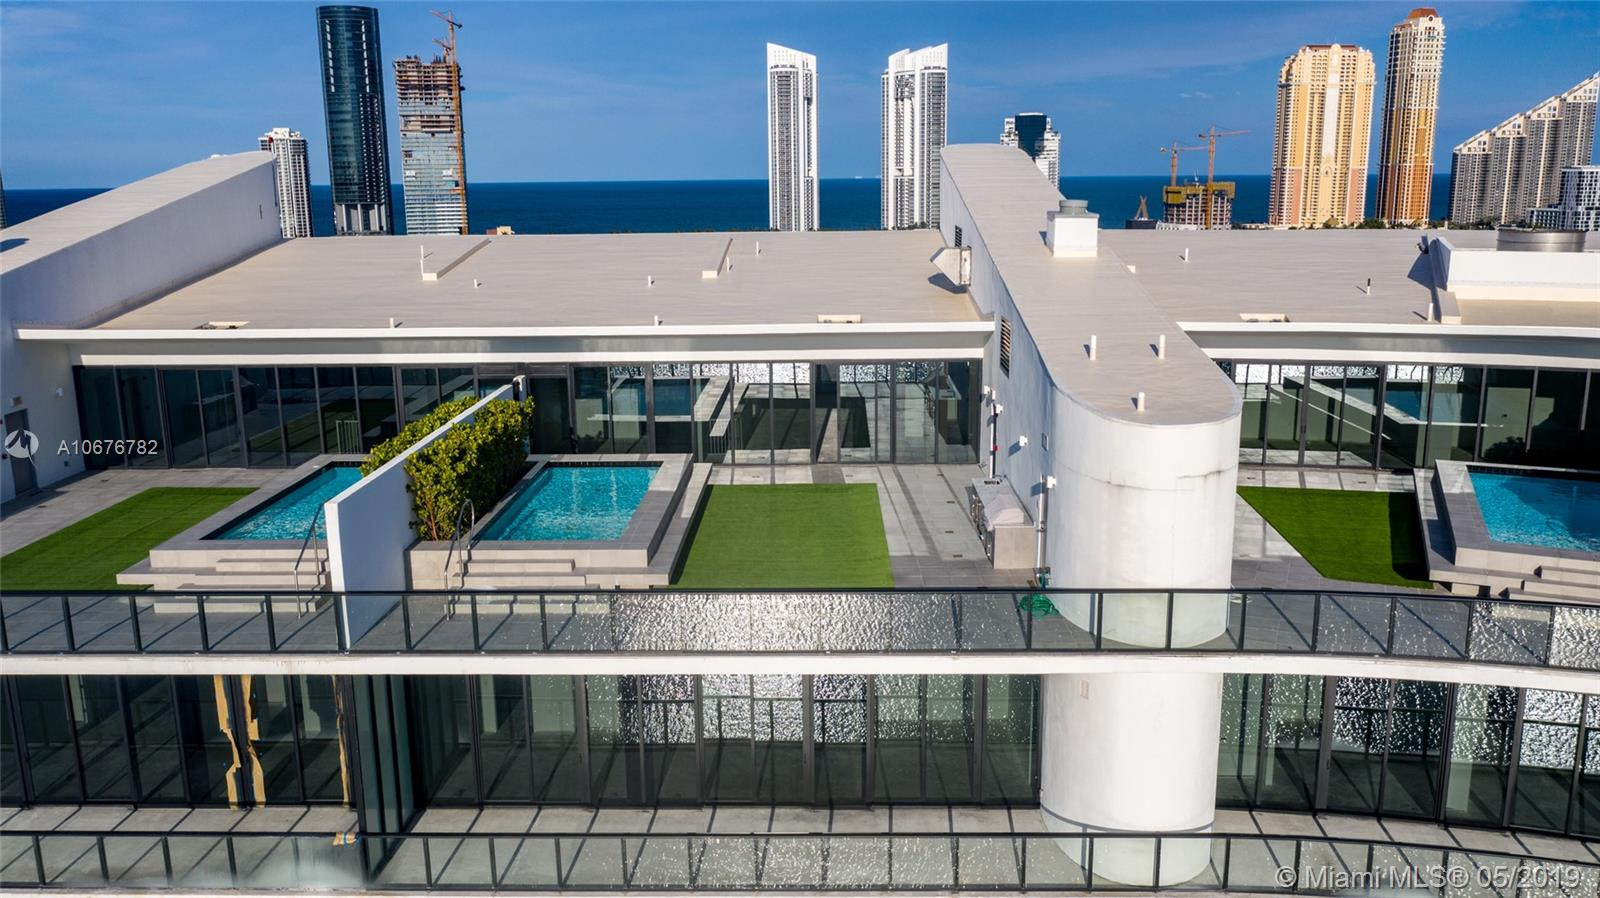 Live on your private island. Prive is an exclusive private island in Aventura. It offers five star amenities and absolute privacy. Decorator ready Penthouse unit with 4,398 sq.. feet. And 15ft ceilings, private elevators, summer kitchen on each level and private pool in balcony. Enjoy unobstructed waterfront views from every room, Intracoastal, Bay and Ocean. Amenities include private gatehouse entry, full time concierge, 10,000 sq. ft. Gym/spa, marina, pier, 2 pools, restaurant, wine cellar, cigar room, Social Rooms, teenage room, Guest Suites, Caterers Kitchen with Private dining.room